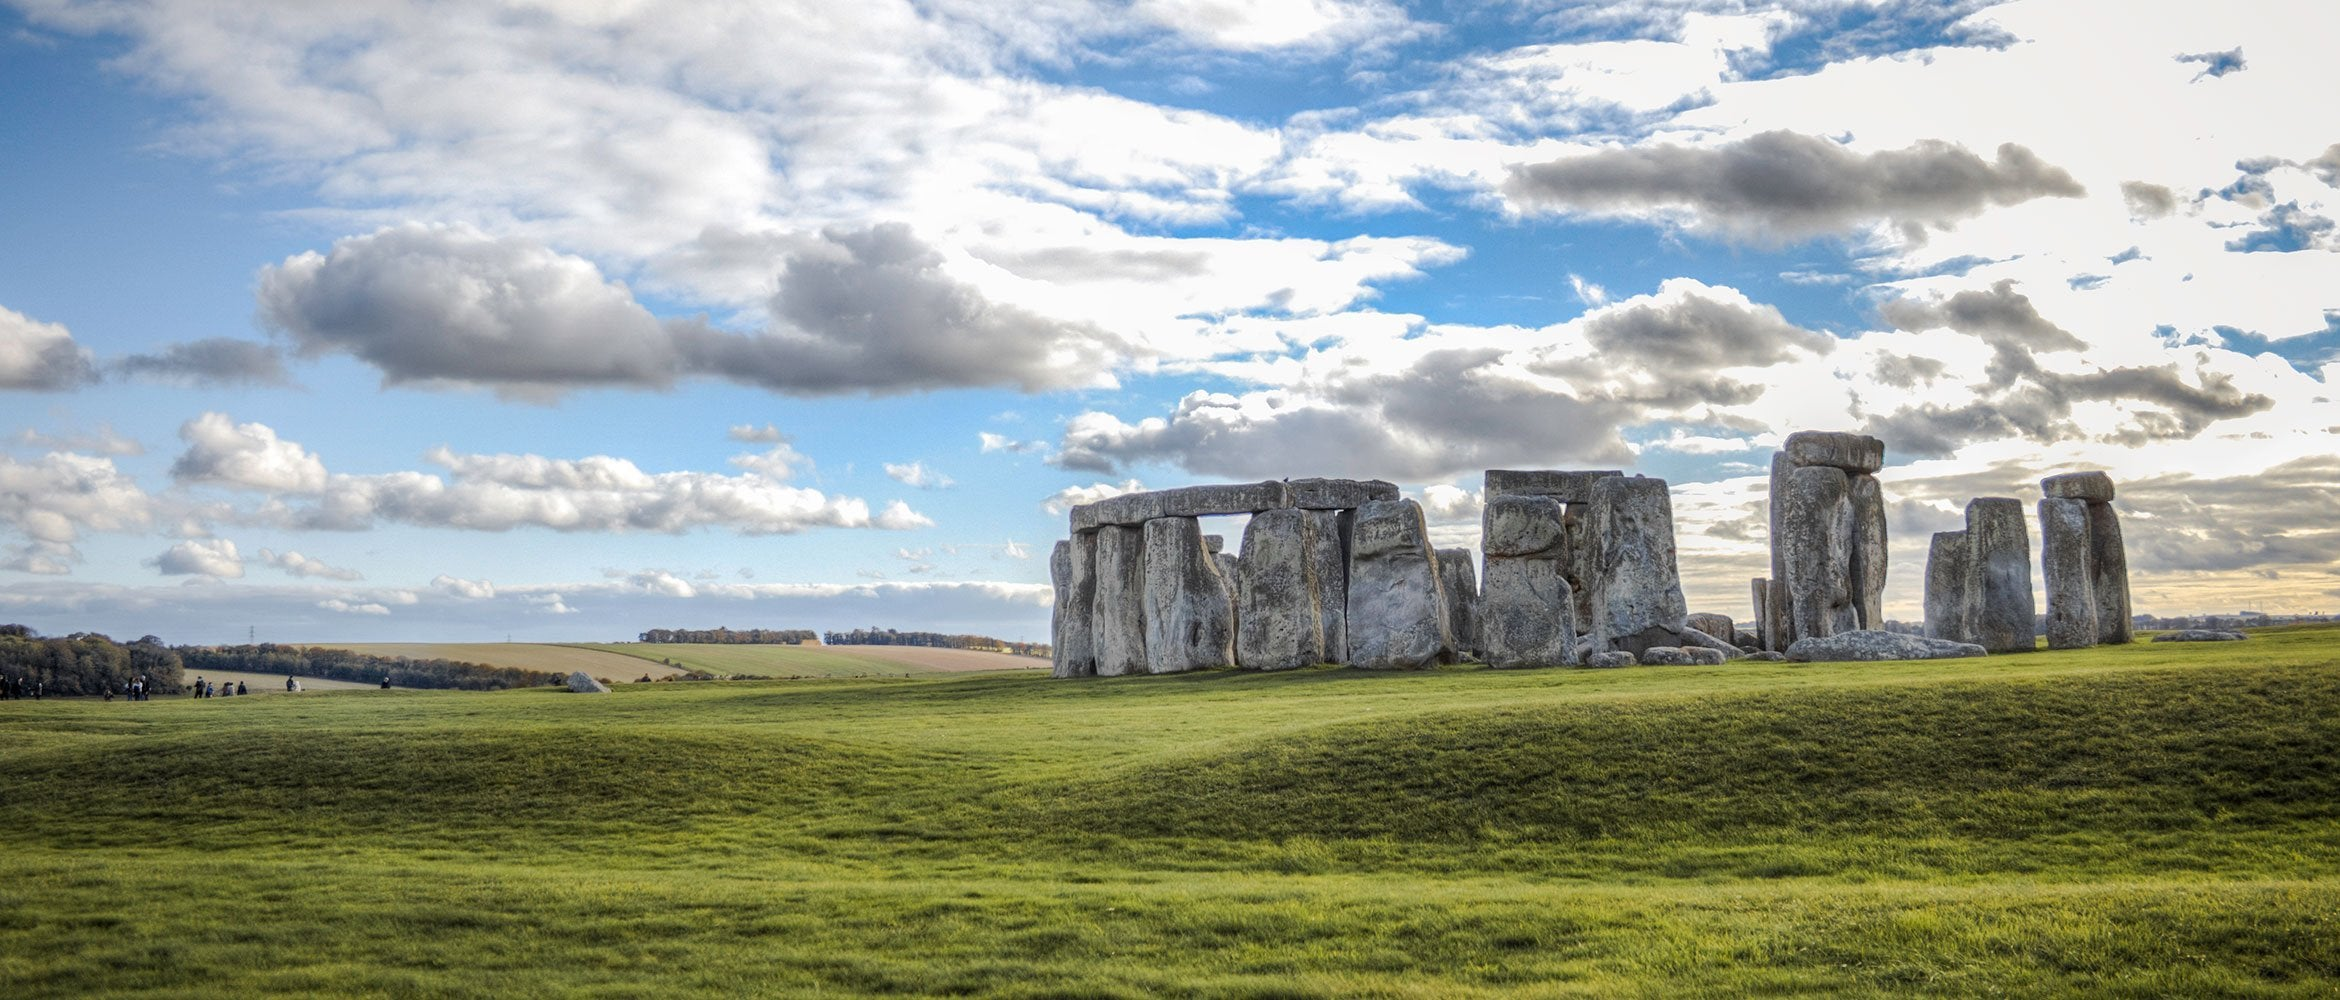 Walking Wiltshire's Great Stones Way | WildBounds